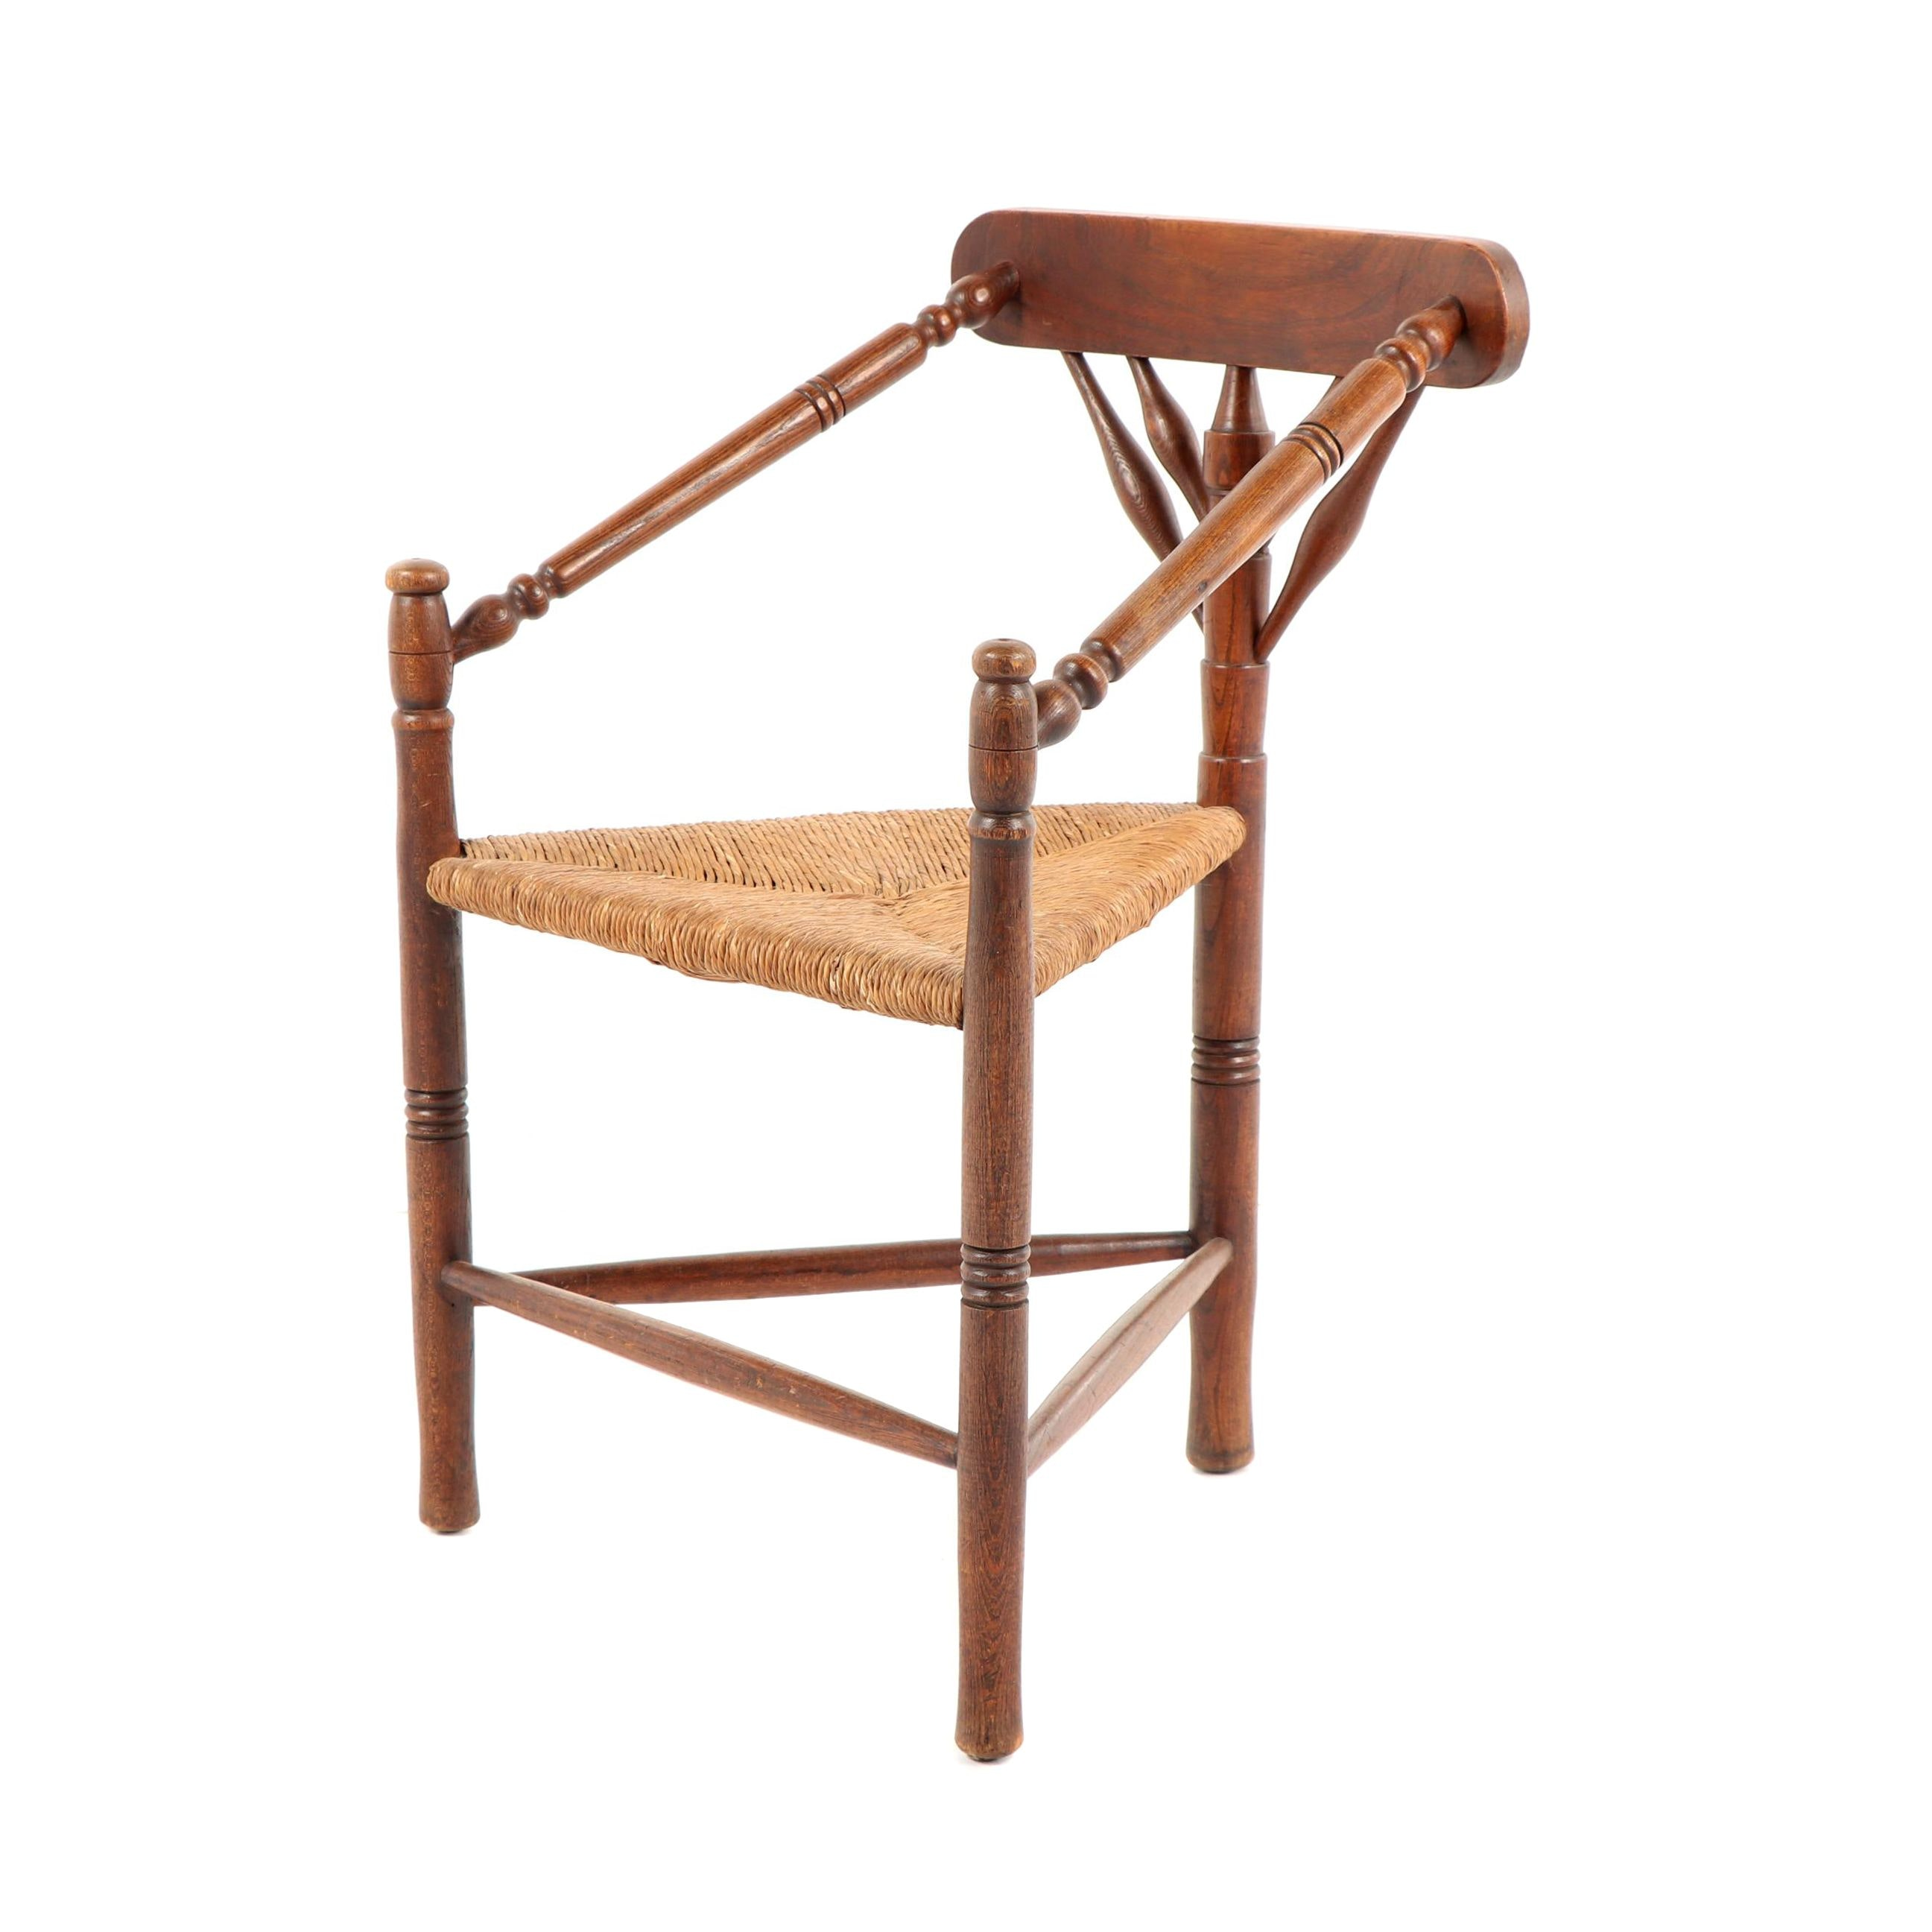 Maple Corner Chair with Woven Grass Seat, Early 20th Century